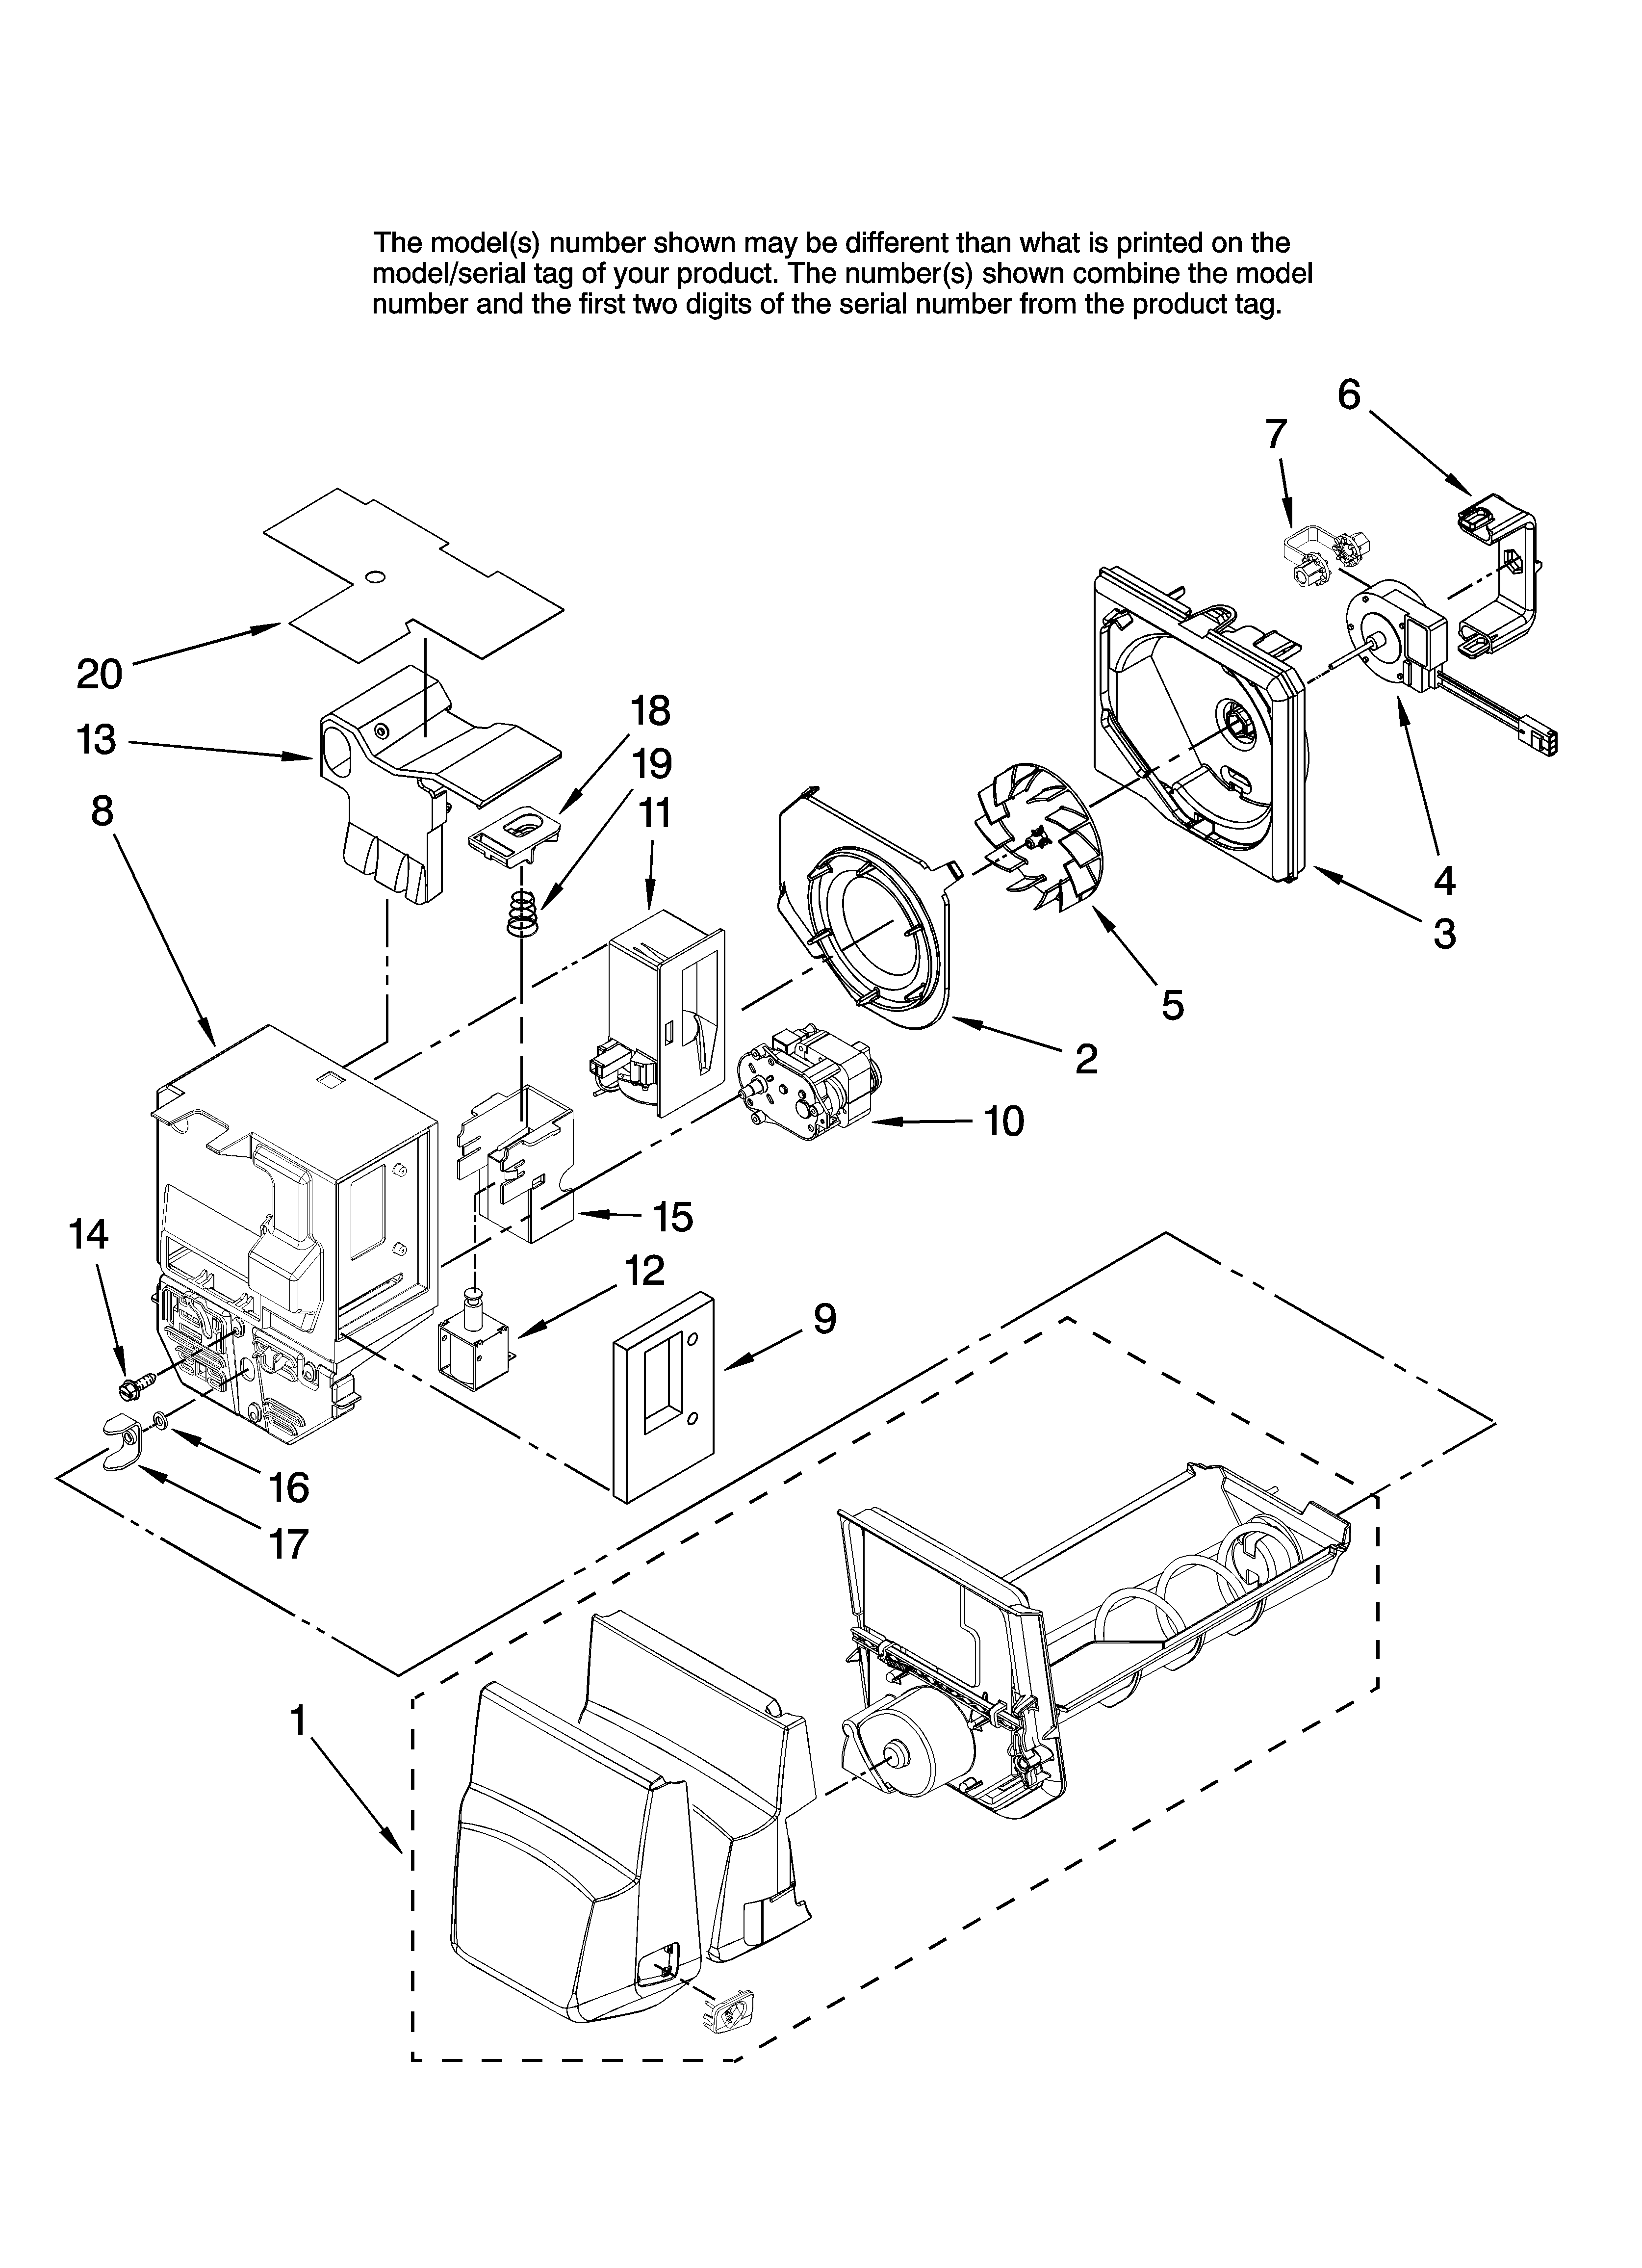 Maytag MFI2569VEM0 motor and ice container parts diagram